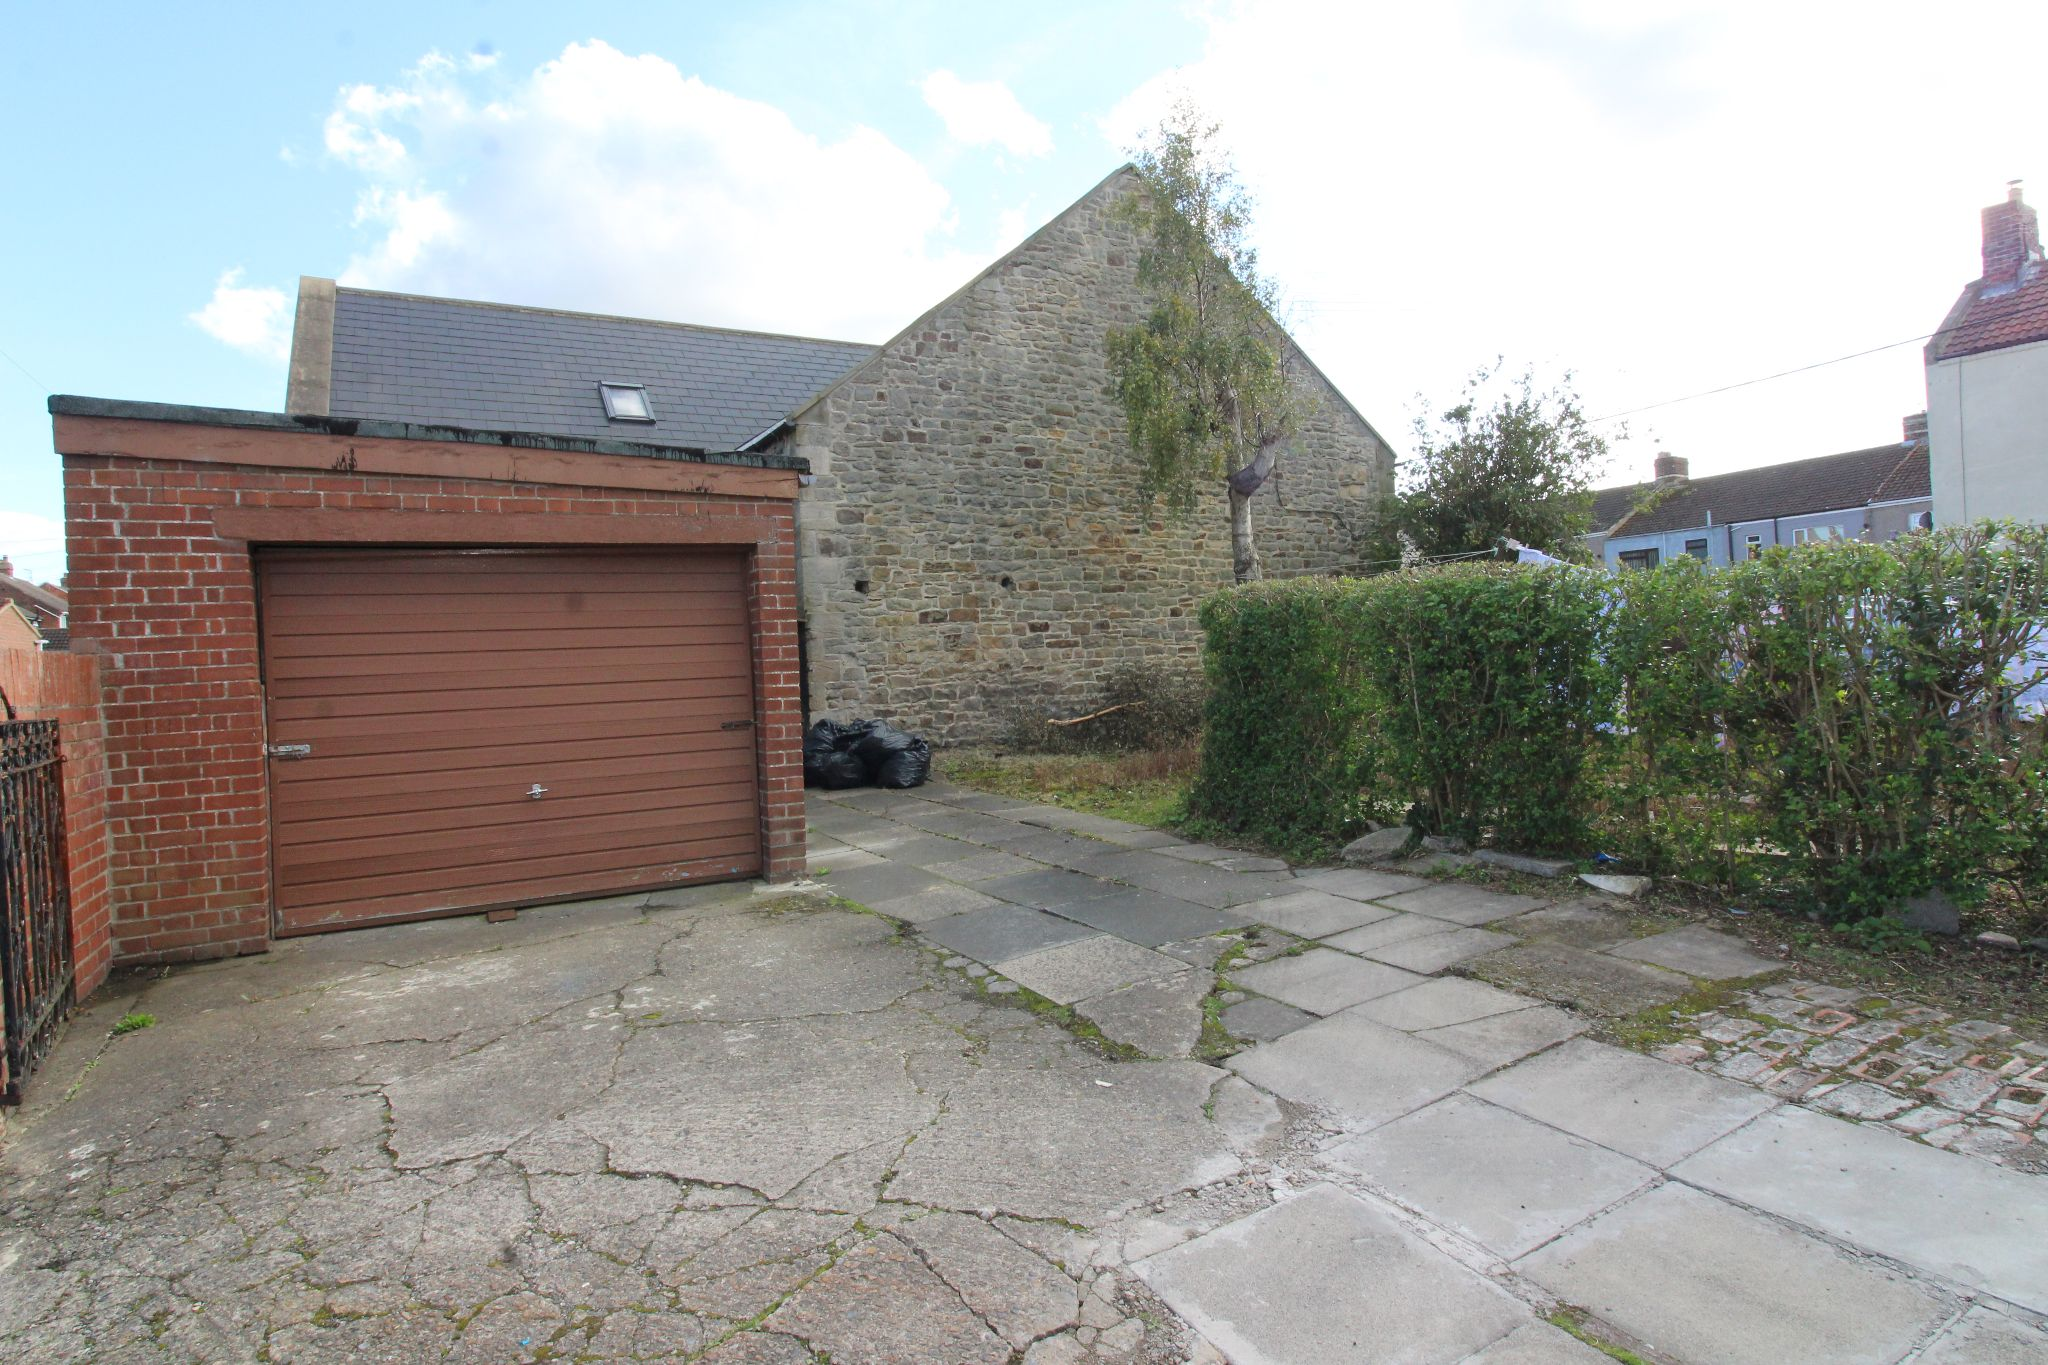 3 bedroom detached house For Sale in Durham - Photograph 7.